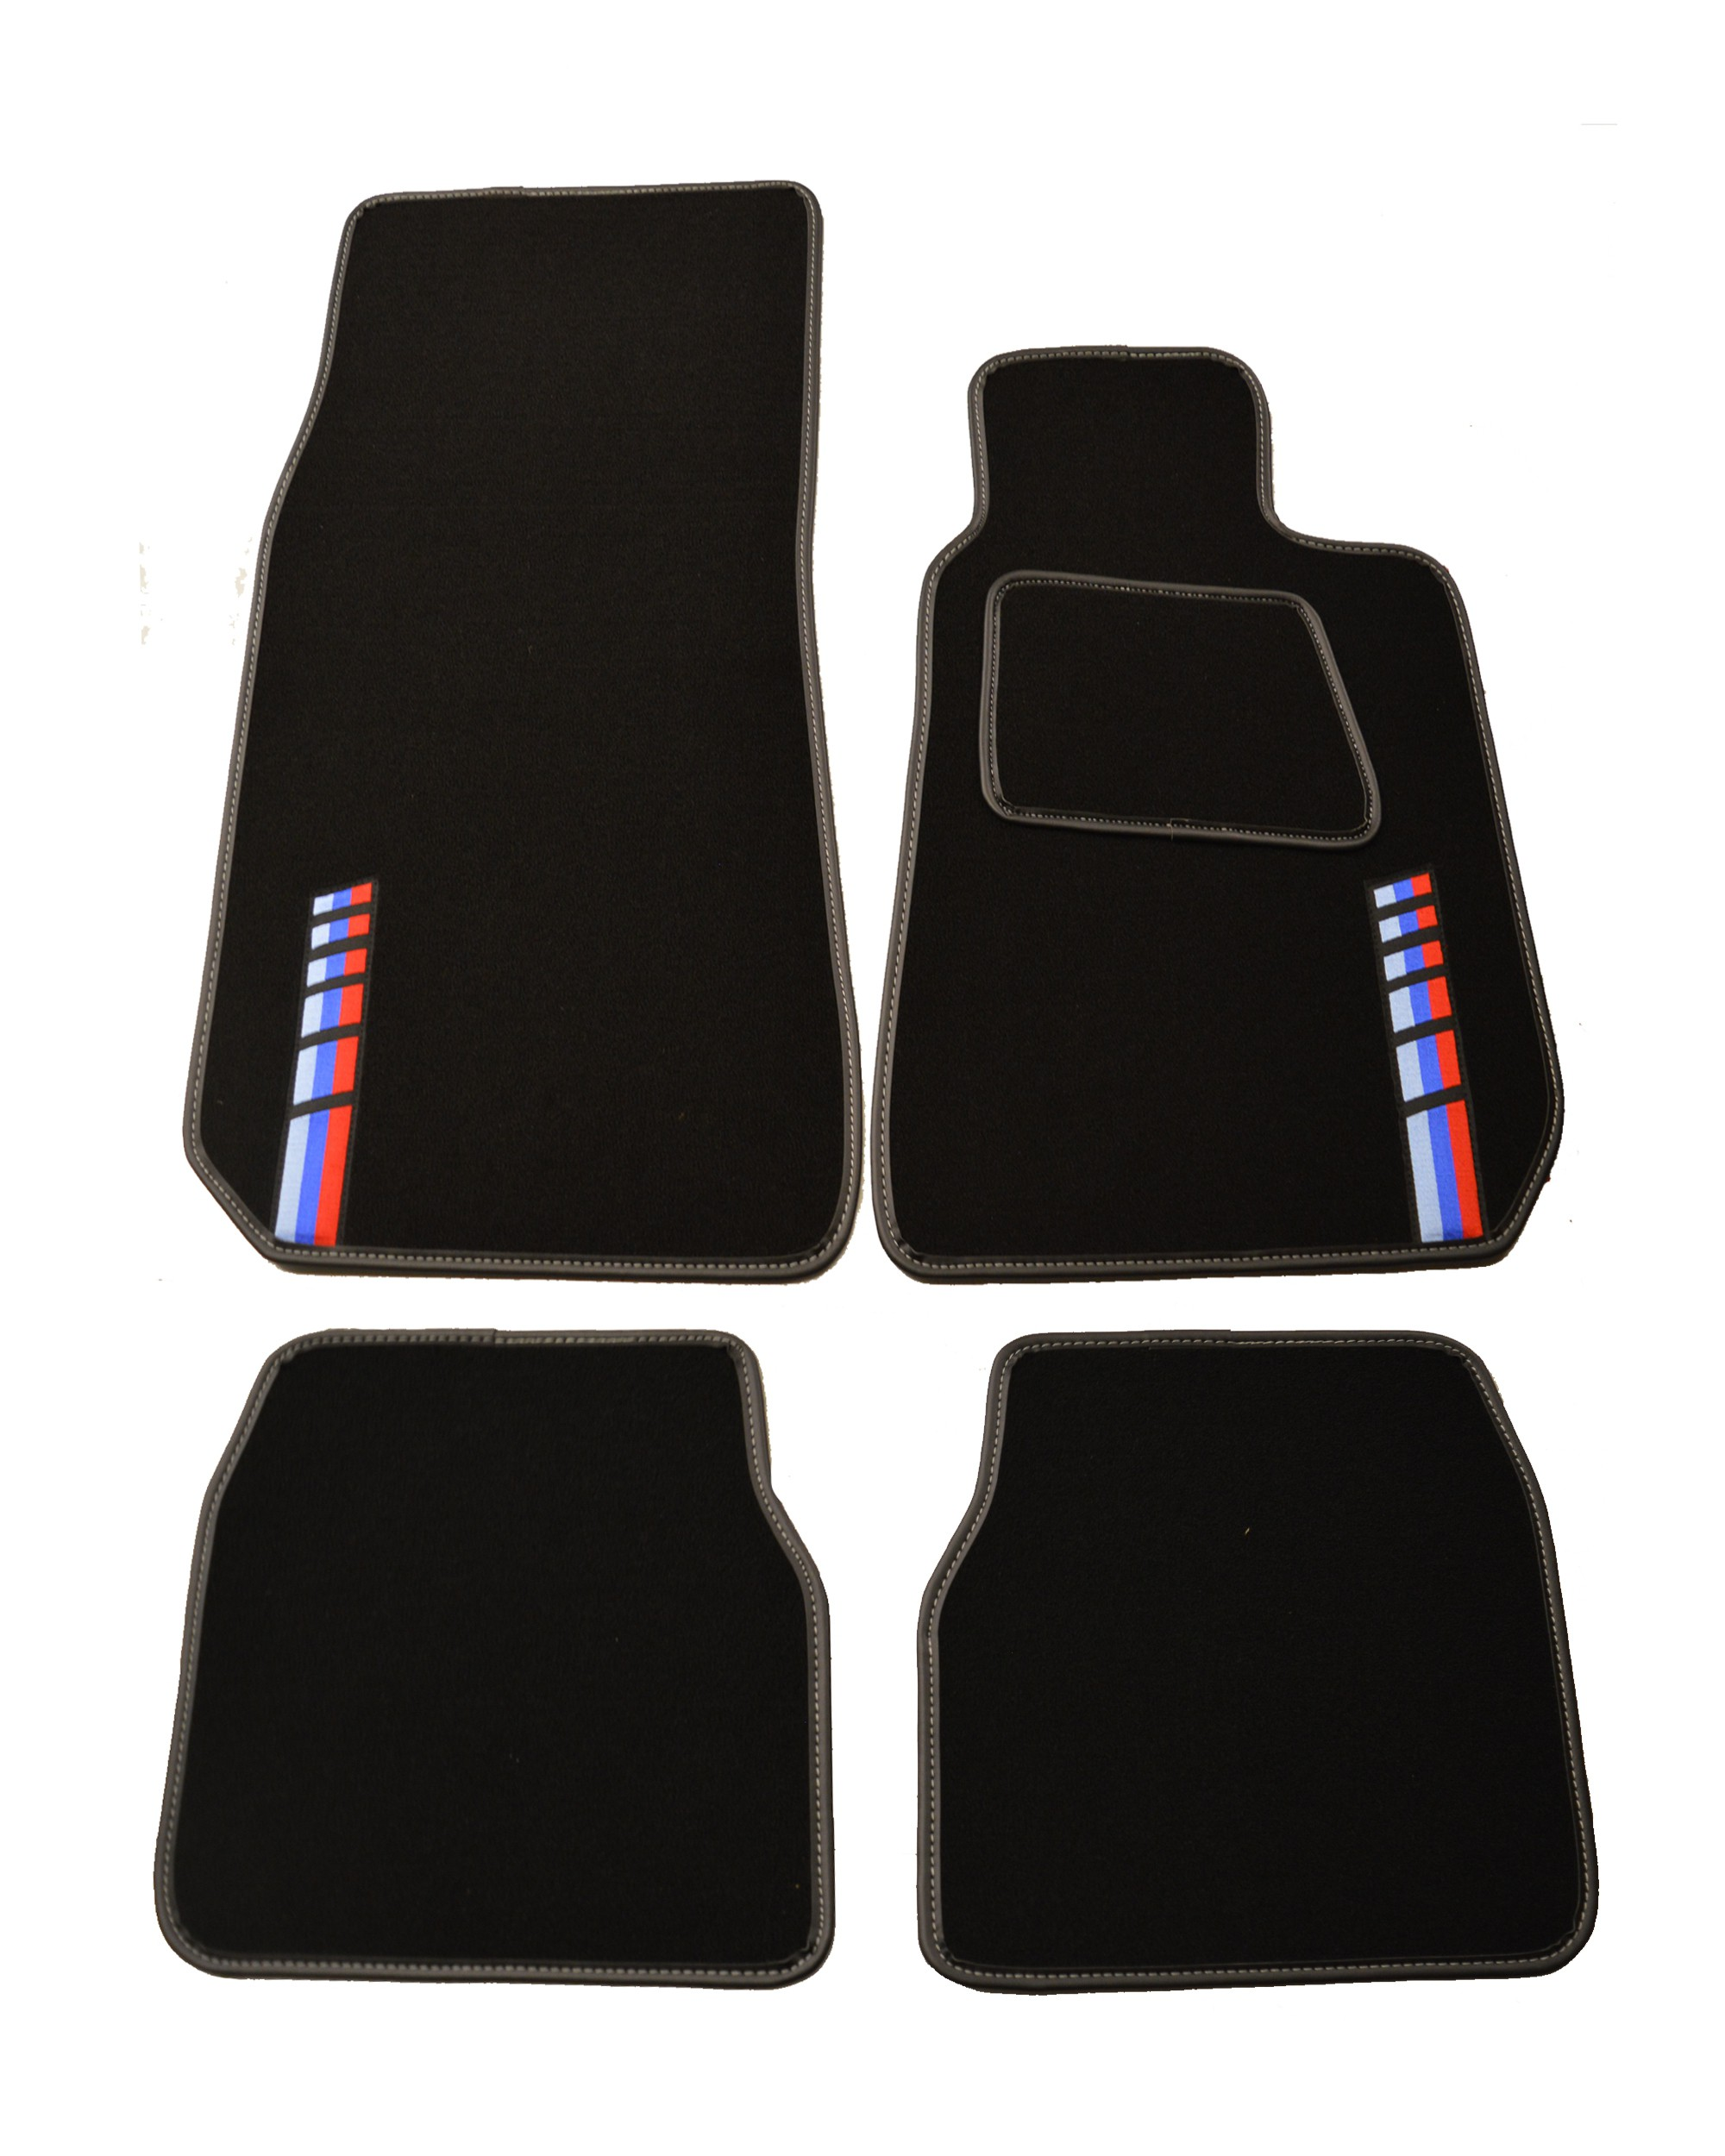 BMW E30 - Black Carpet Car Mats